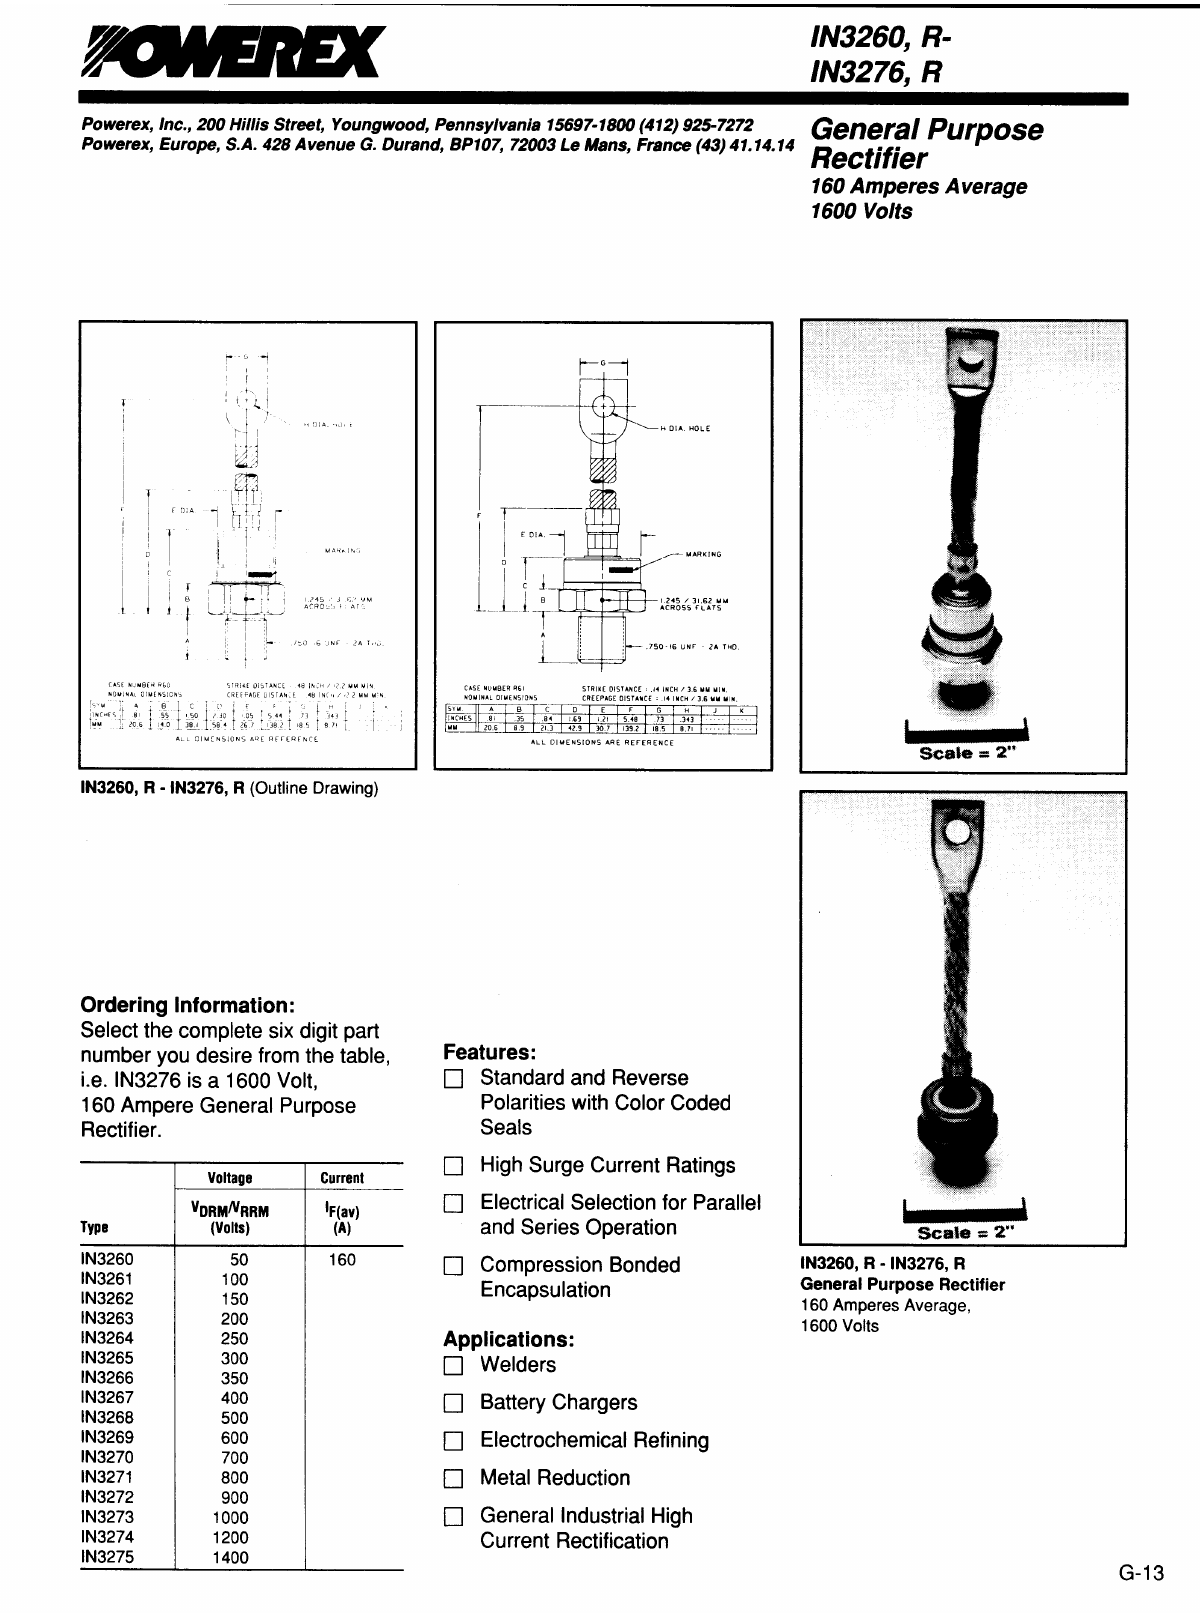 R-IN3265 datasheet